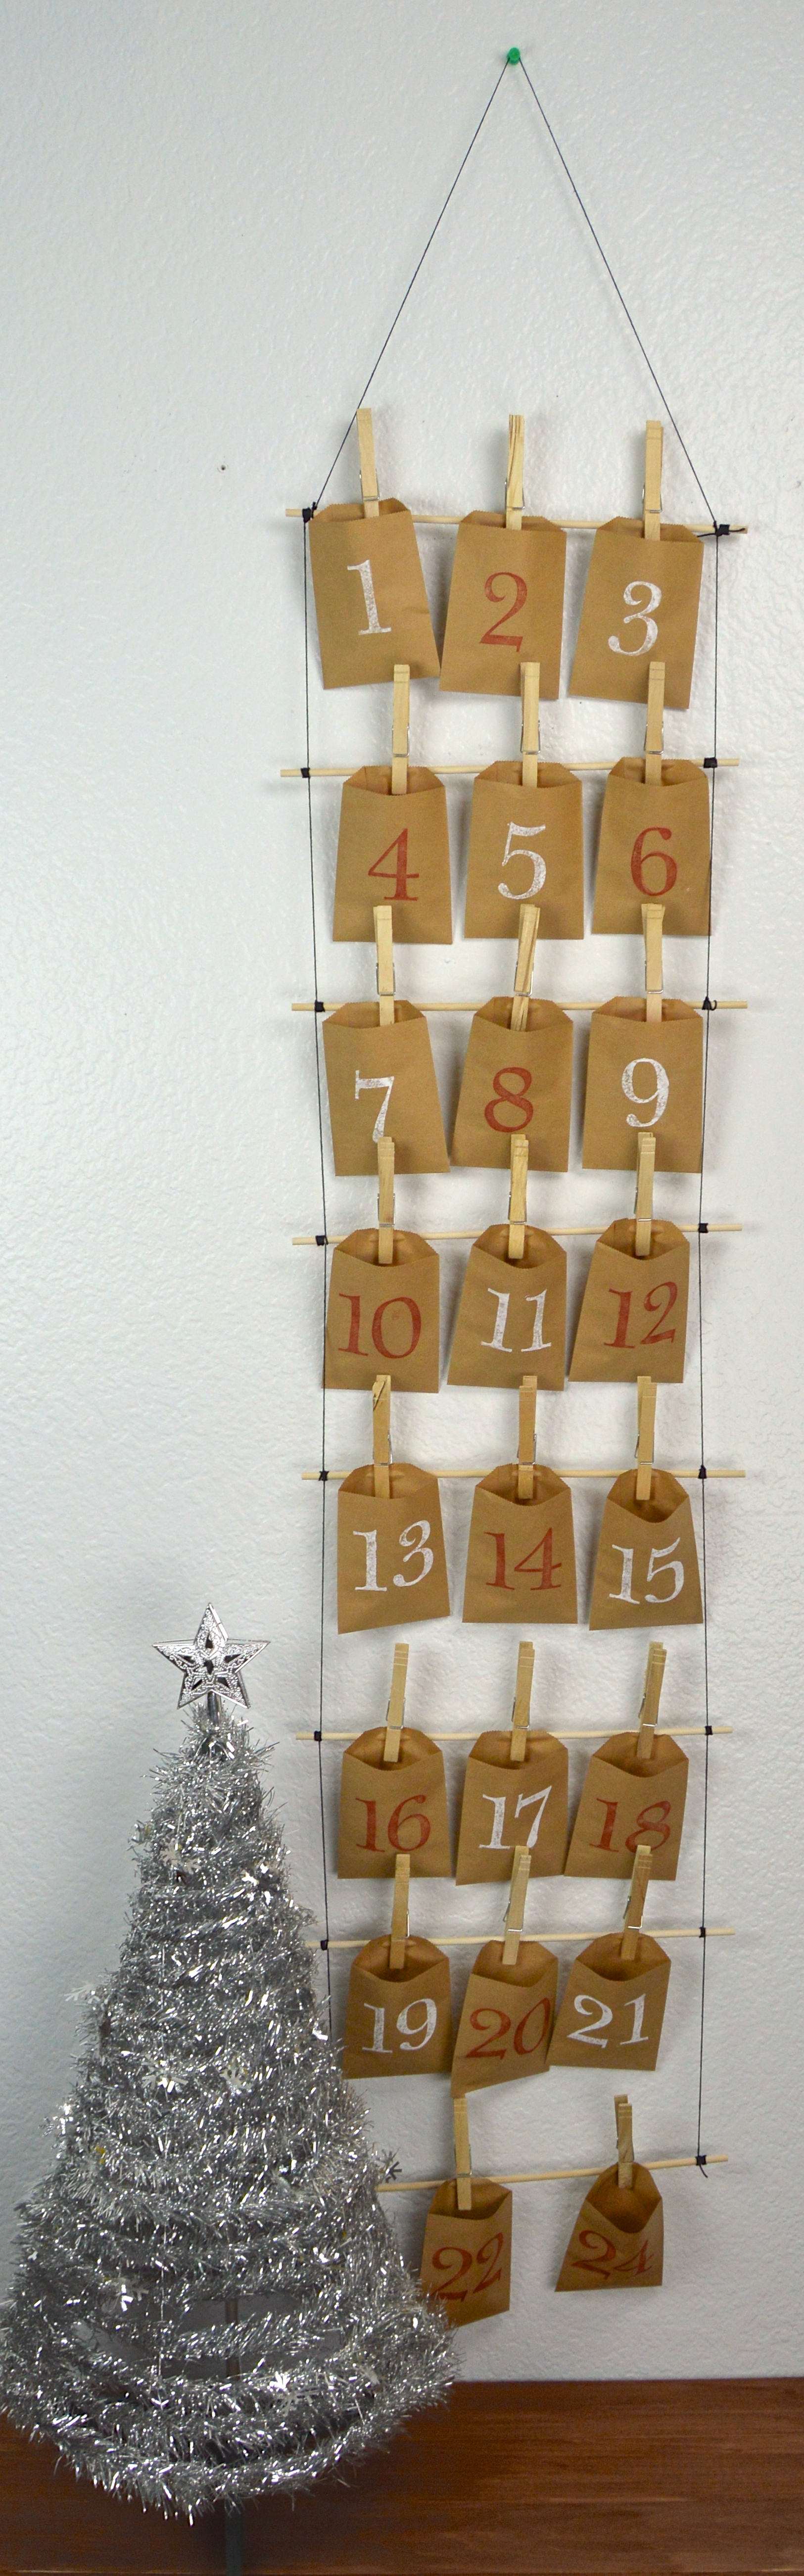 Diy Calendar December : Diy envelope advent calendar revamperate